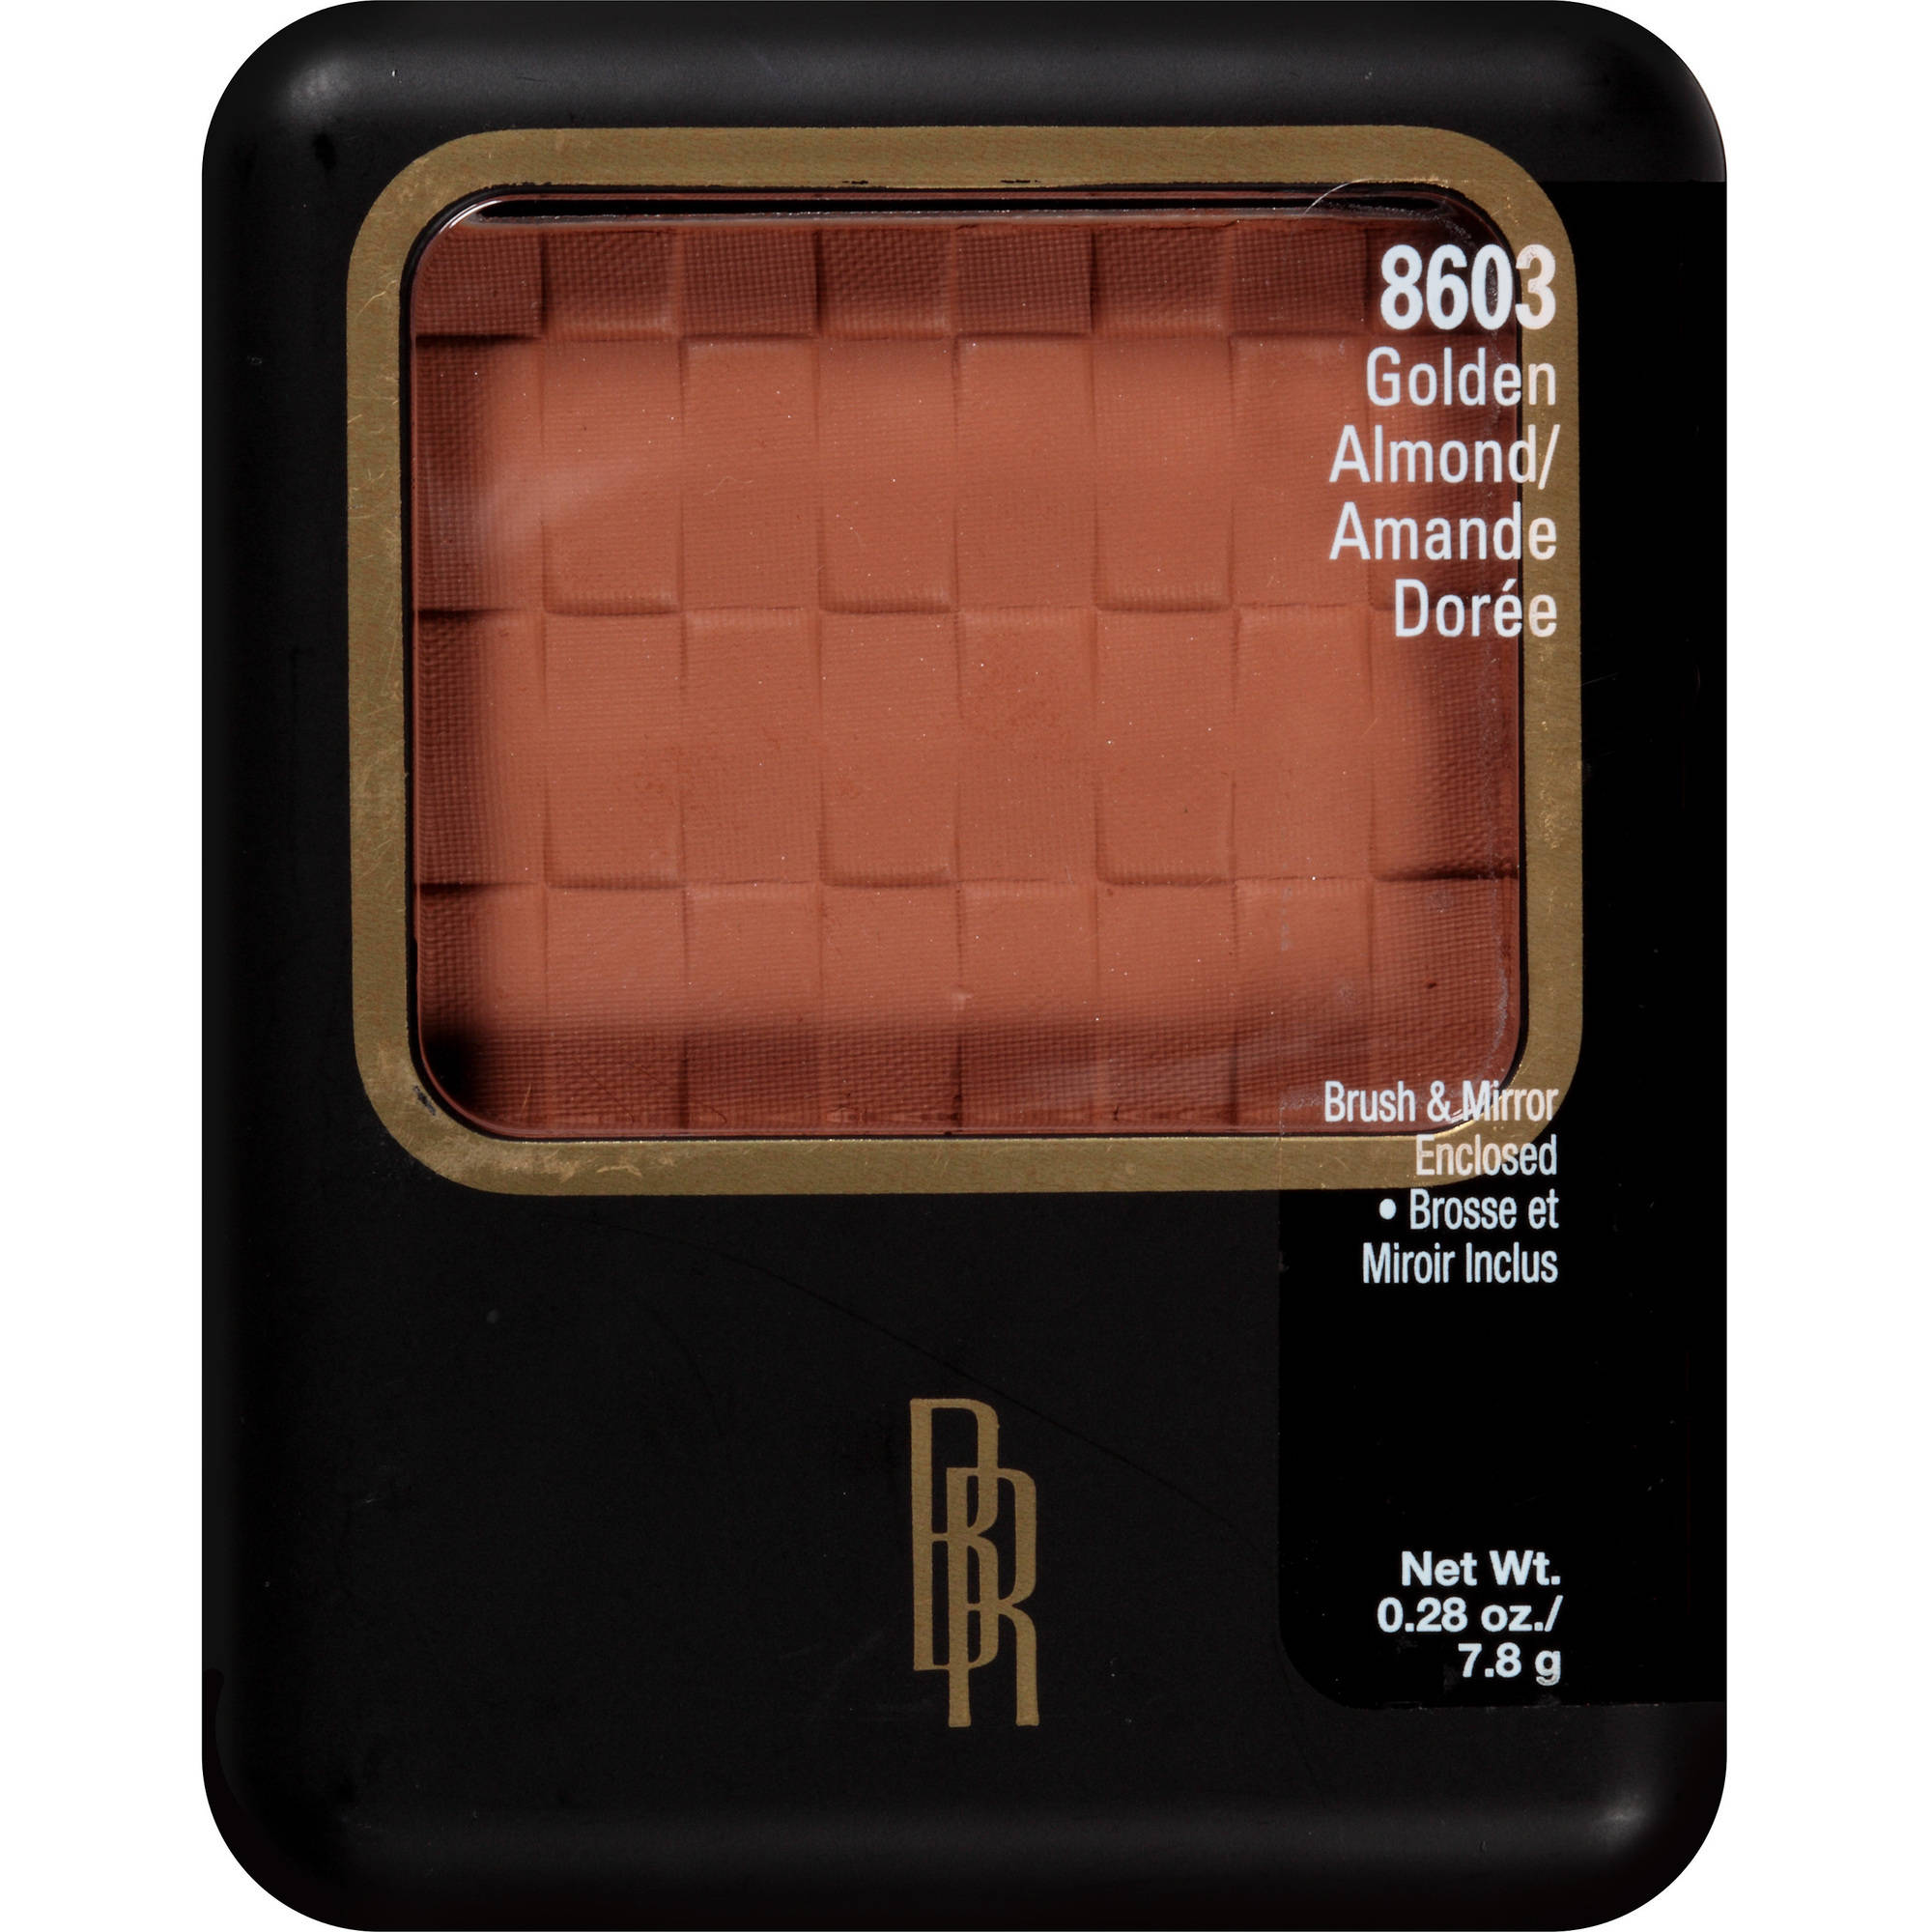 Black Radiance Pressed Facial Powder, 8603 Golden Almond, 0.28 oz